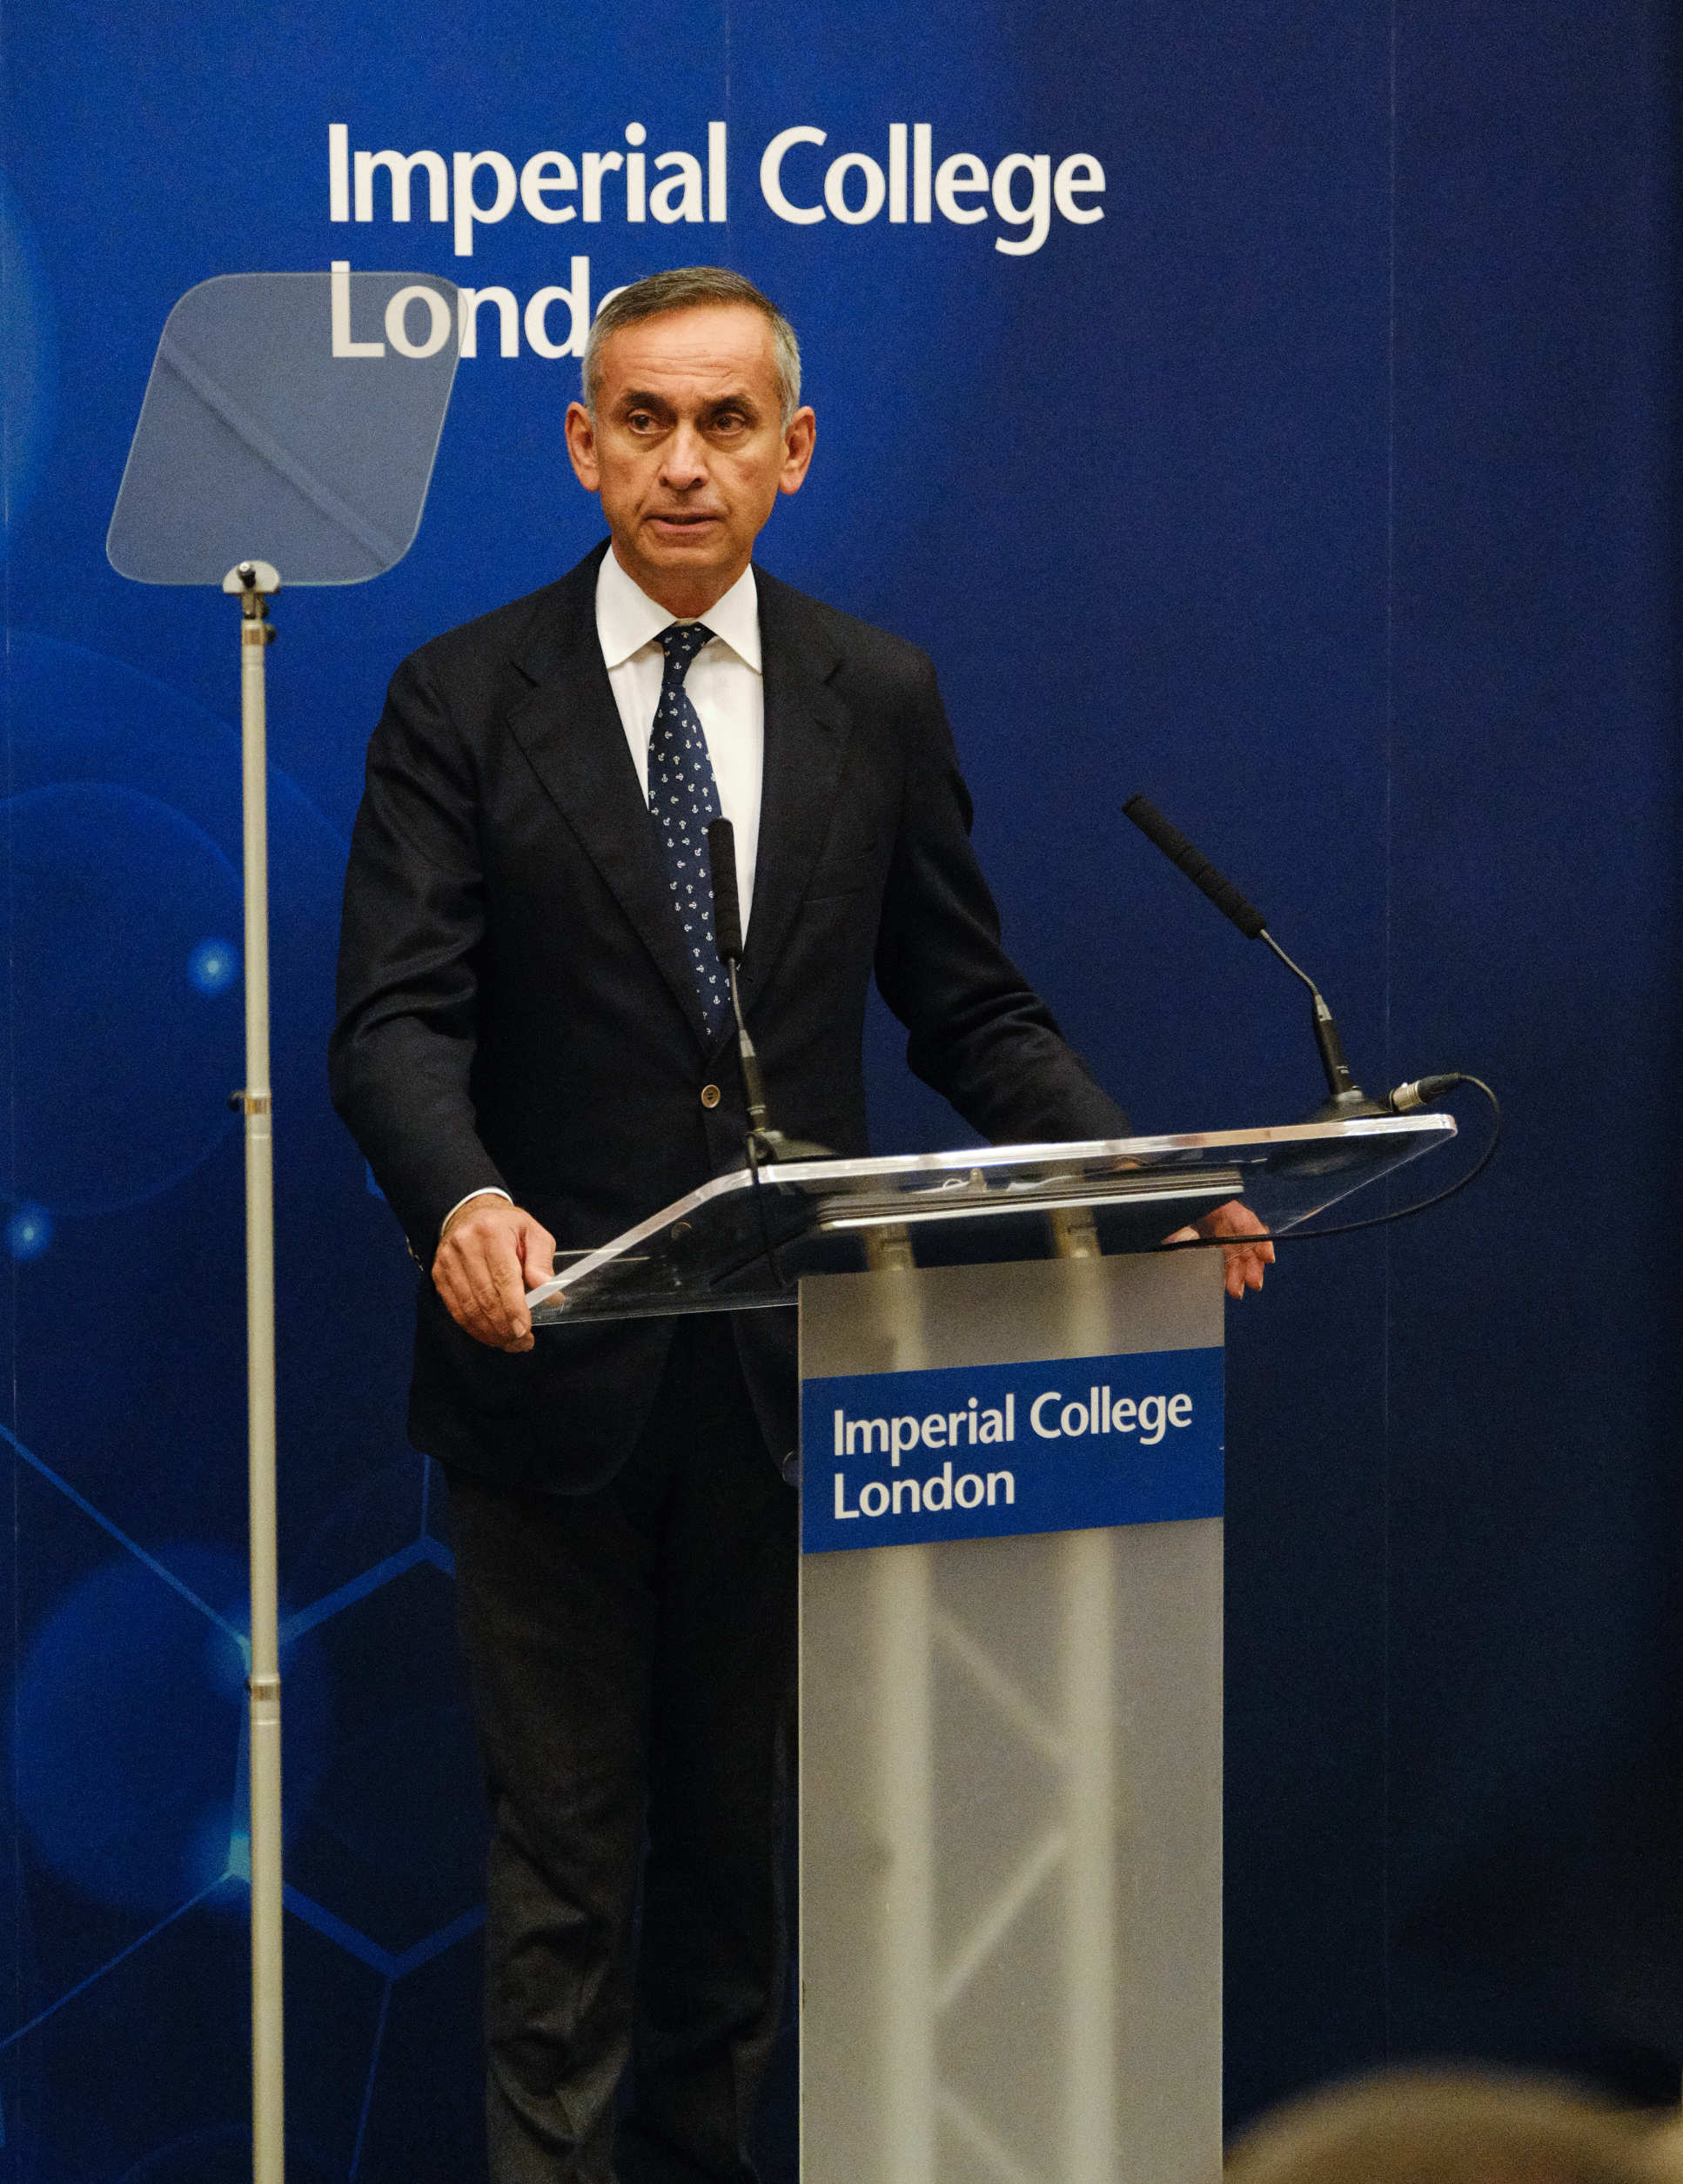 Lord Darzi said the Vice President had brought extraordinary leadership to the fight against cancer